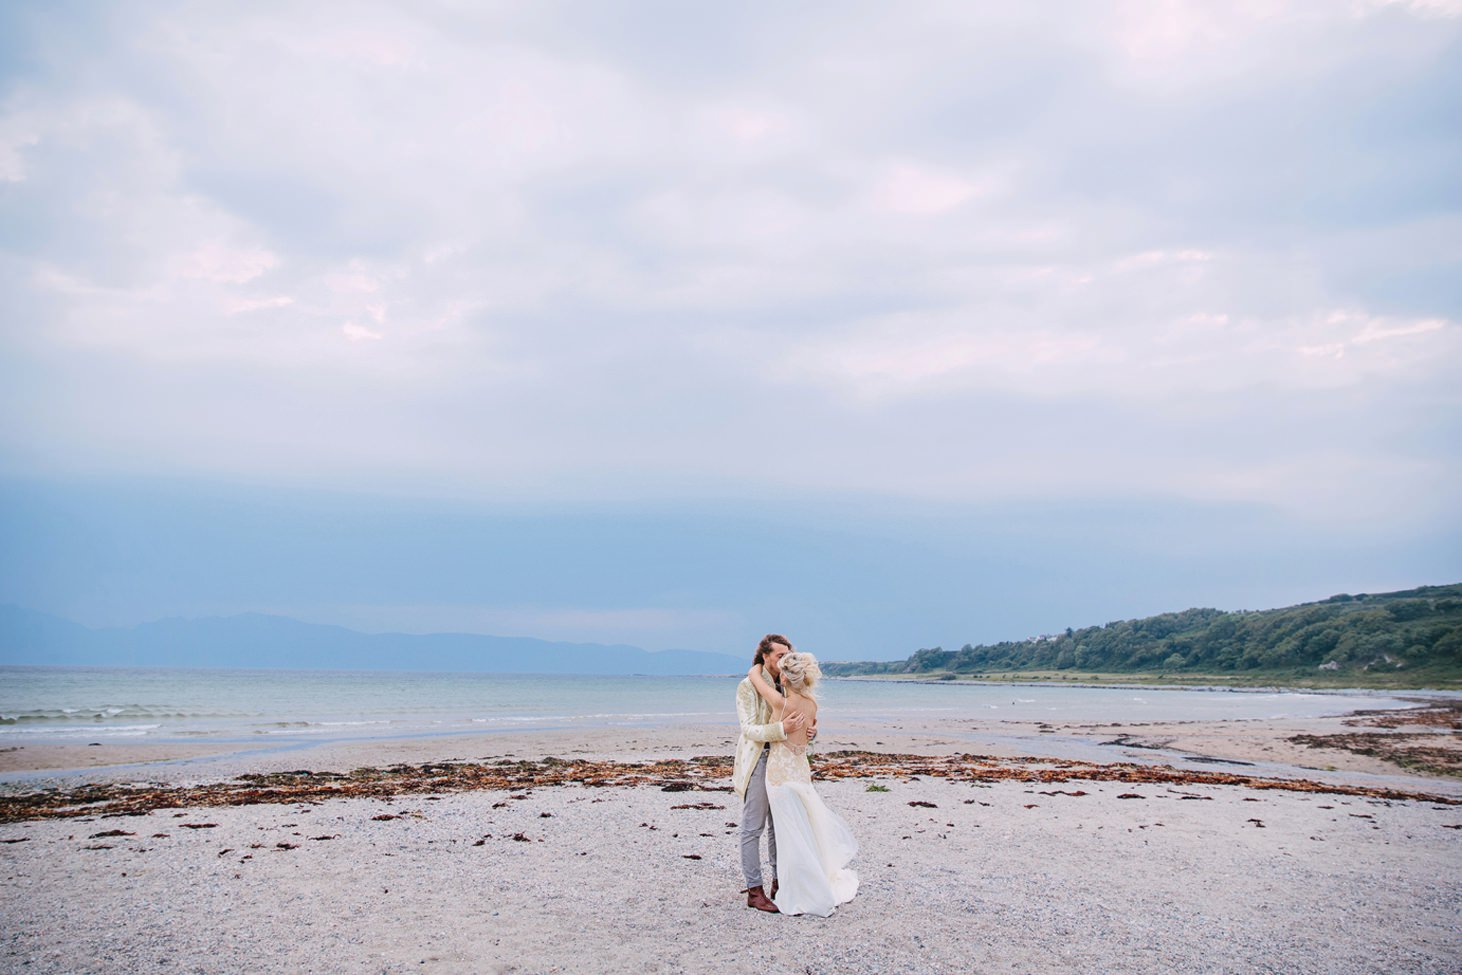 sle of bute wedding photography wedding couple on beach